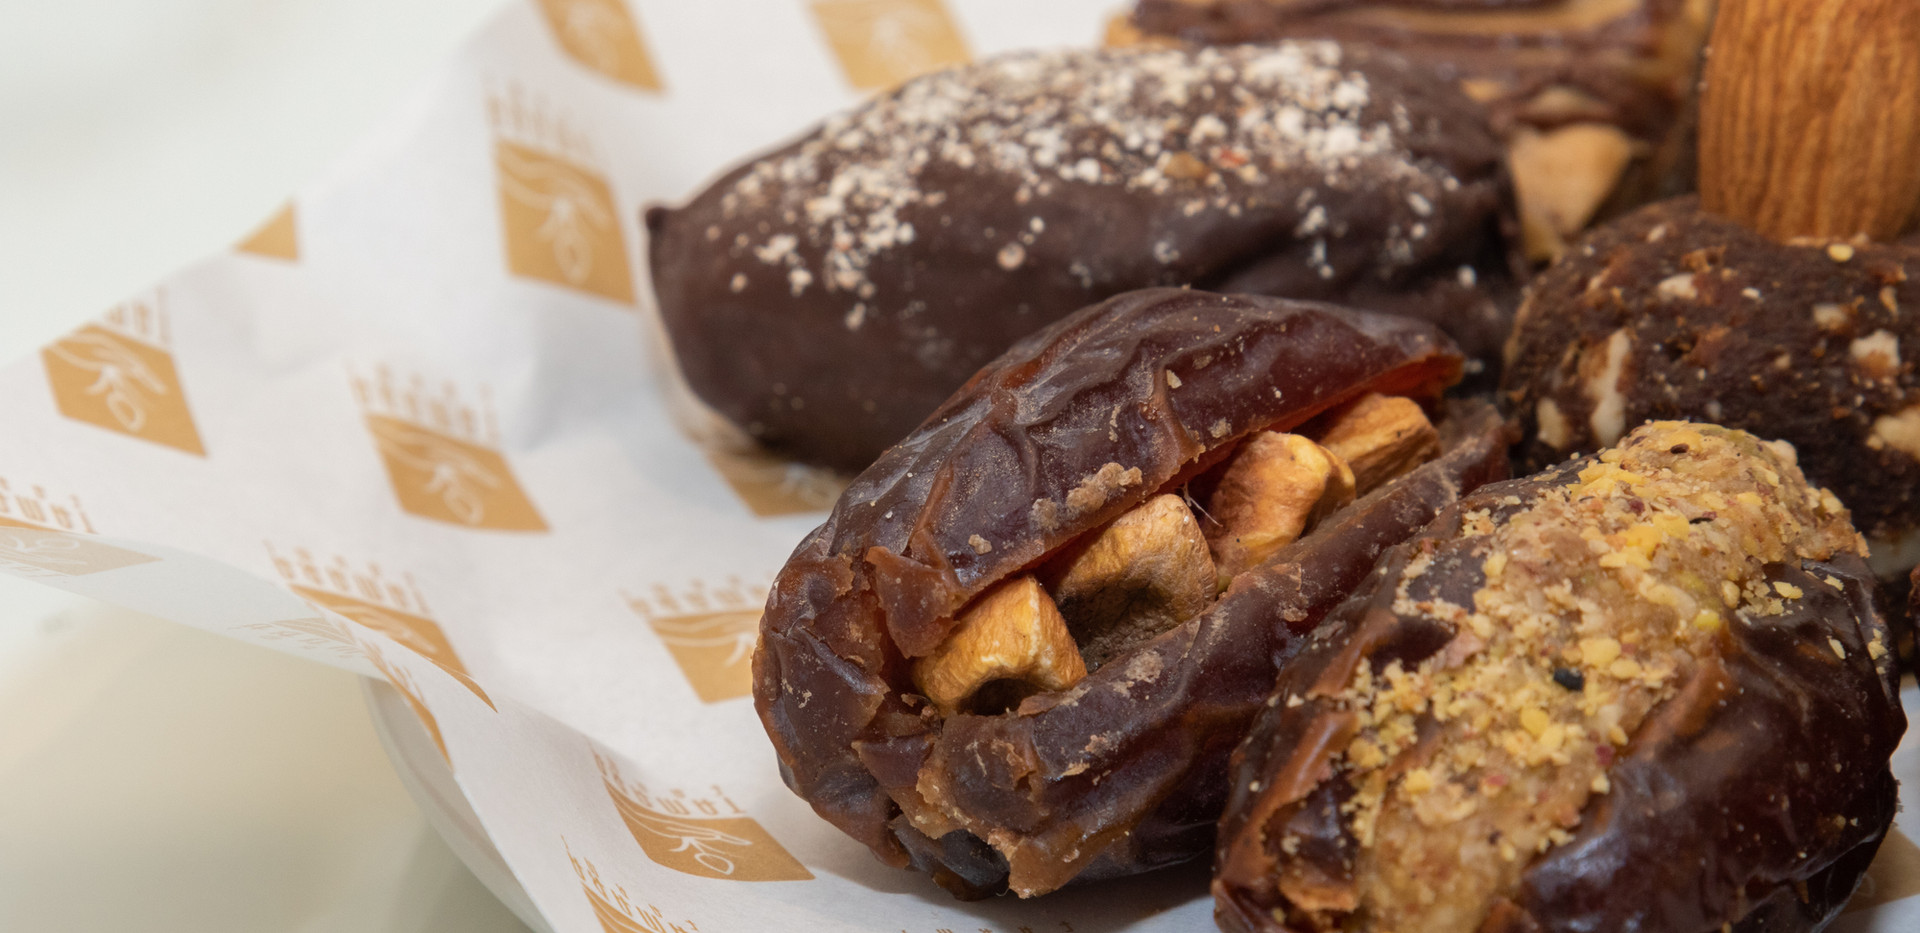 stuffed dates with almonds and pistachios